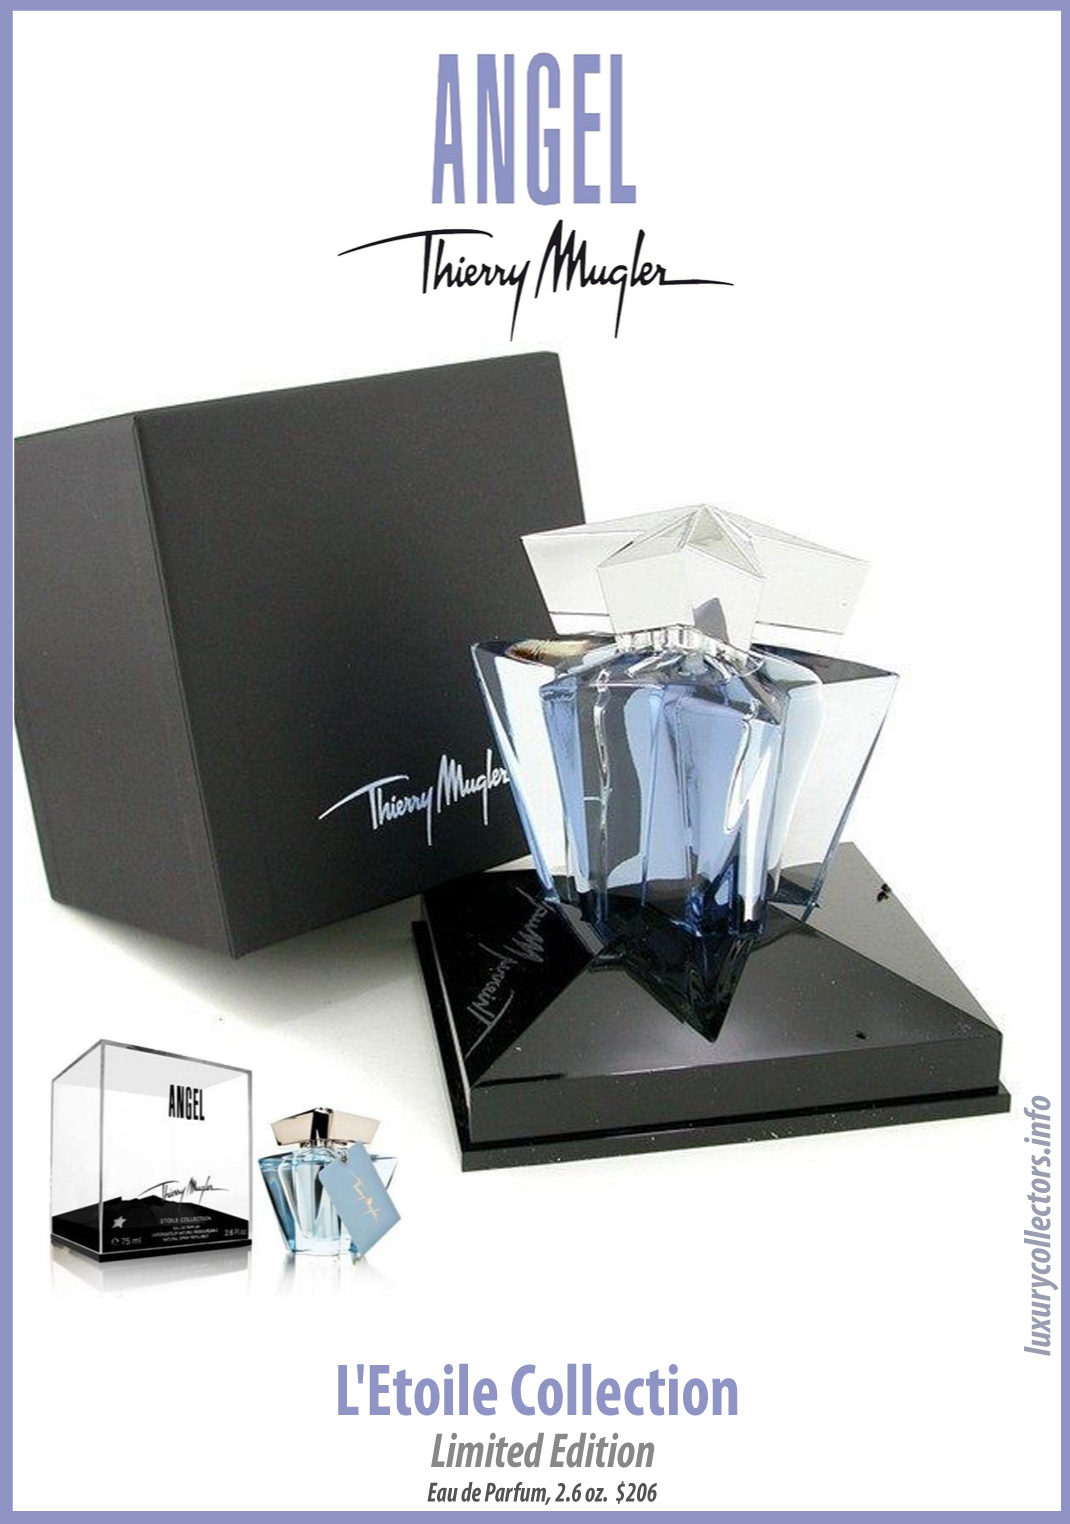 Thierry Mugler Angel Perfume Collector's Limited Edition Bottle Etoile